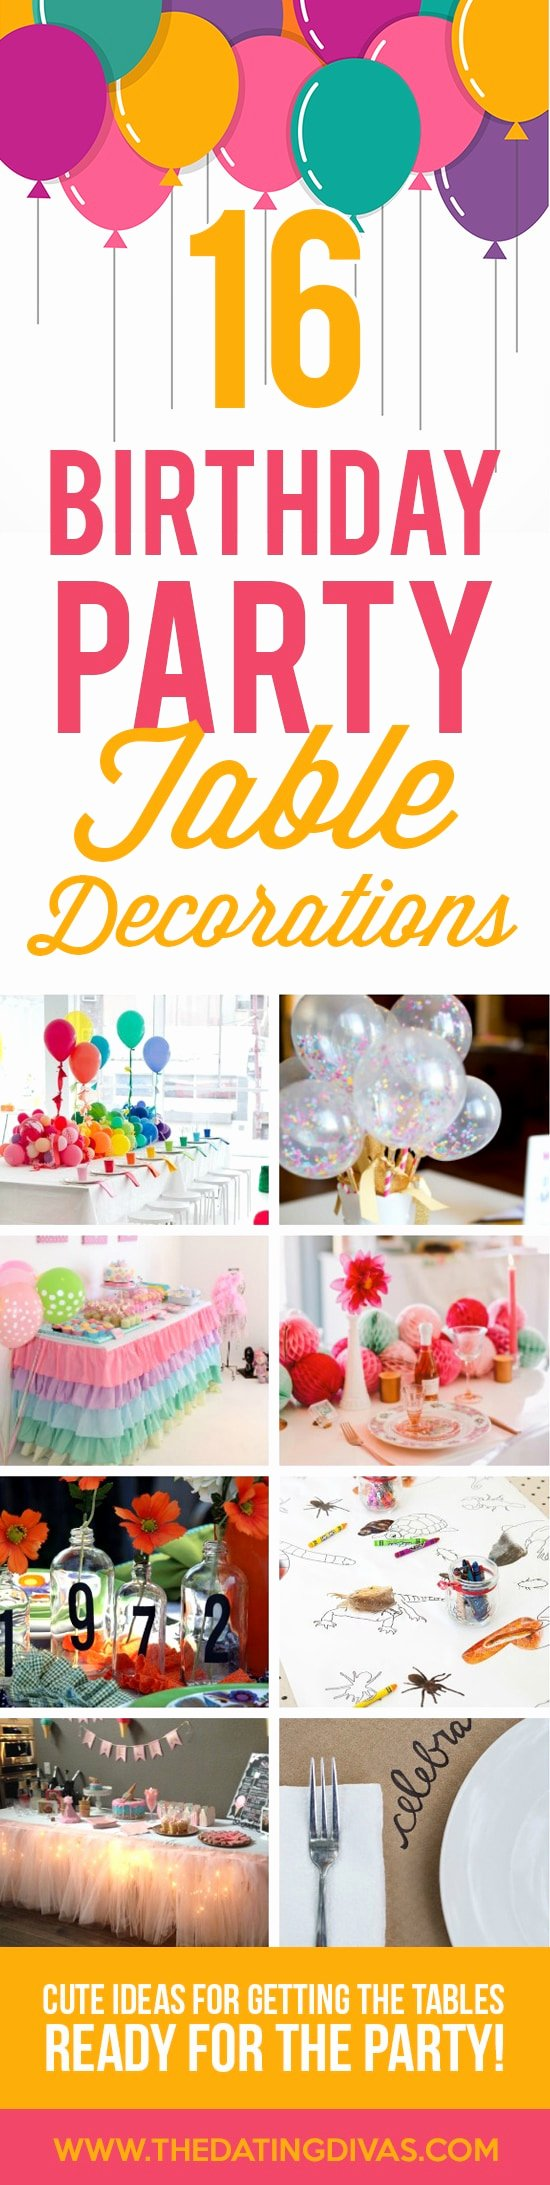 Low Cost Birthday Decoration Ideas Lovely 100 Birthday Party Decoration Ideas the Dating Divas